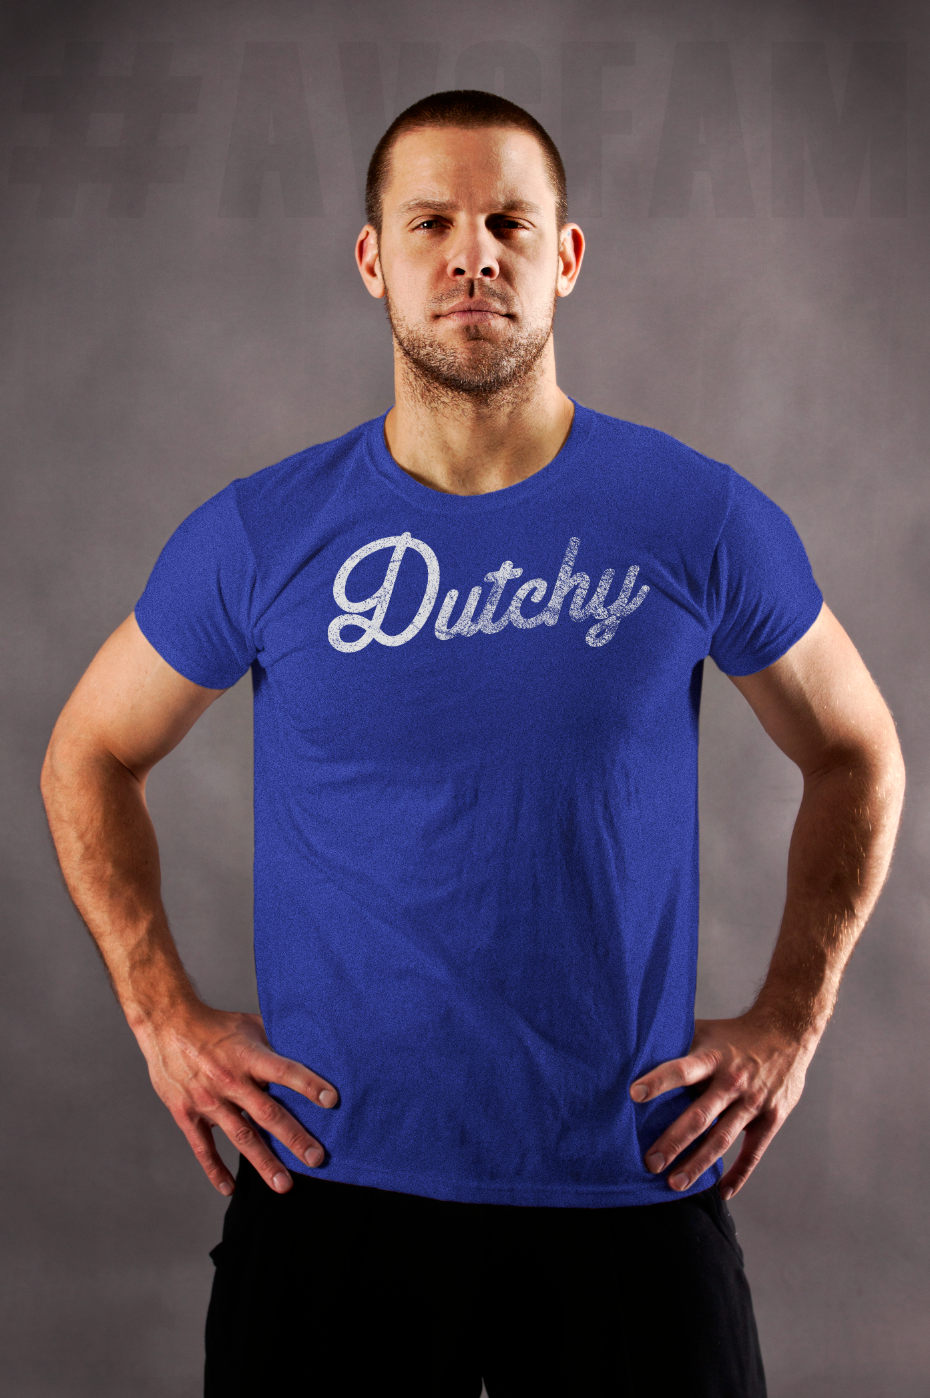 Dutchy on Blue looks pretty awesome!